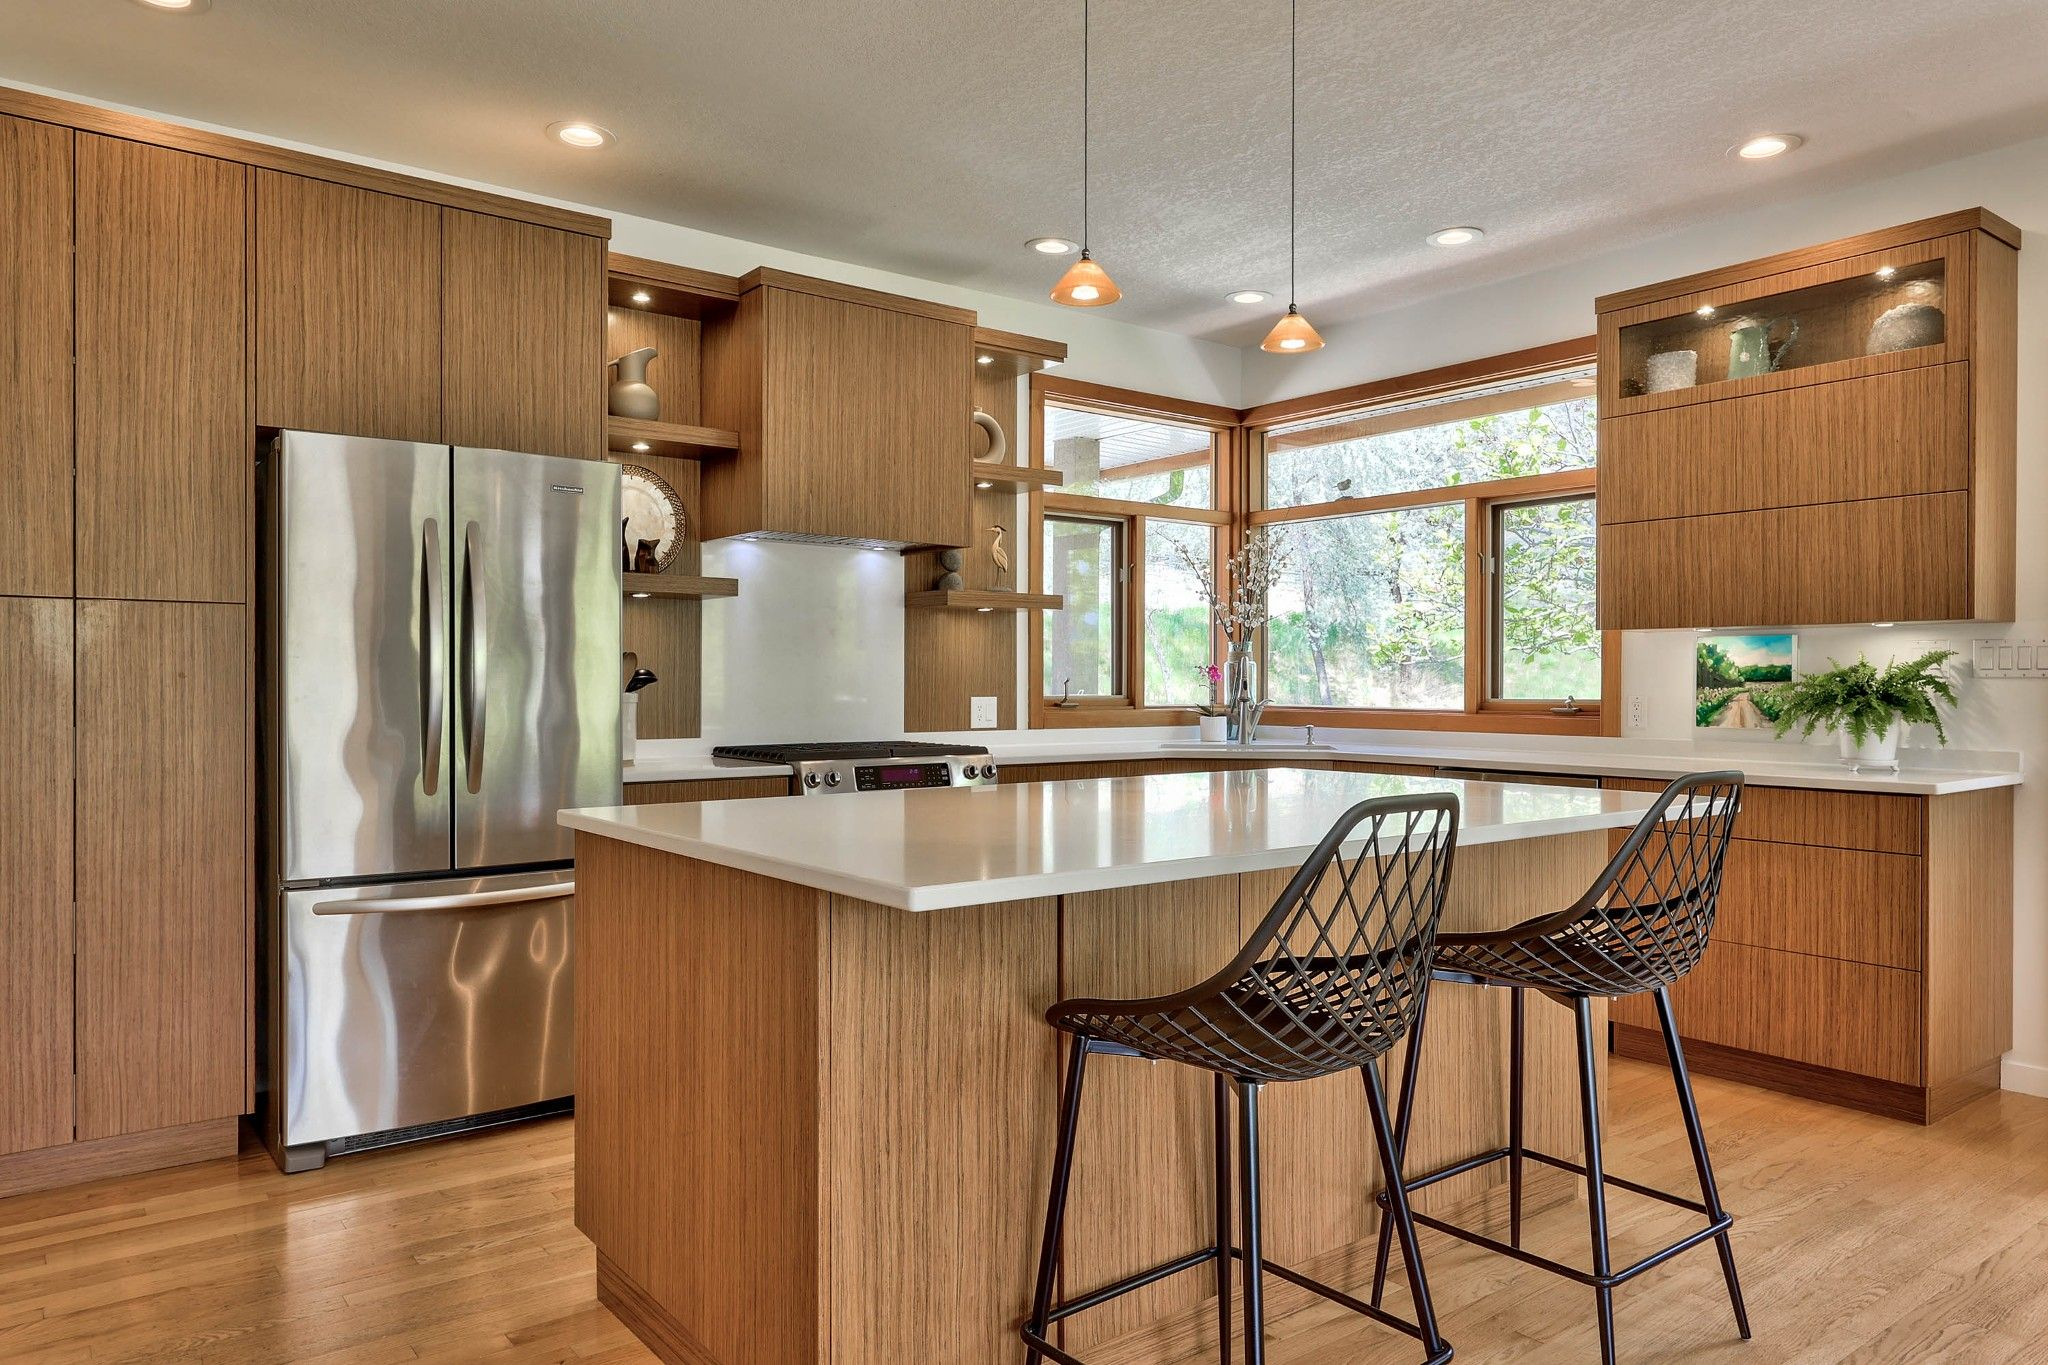 Photo 8: Photos: 3299 E Shuswap Road in Kamloops: South Thompson Valley House for sale : MLS®# 162162